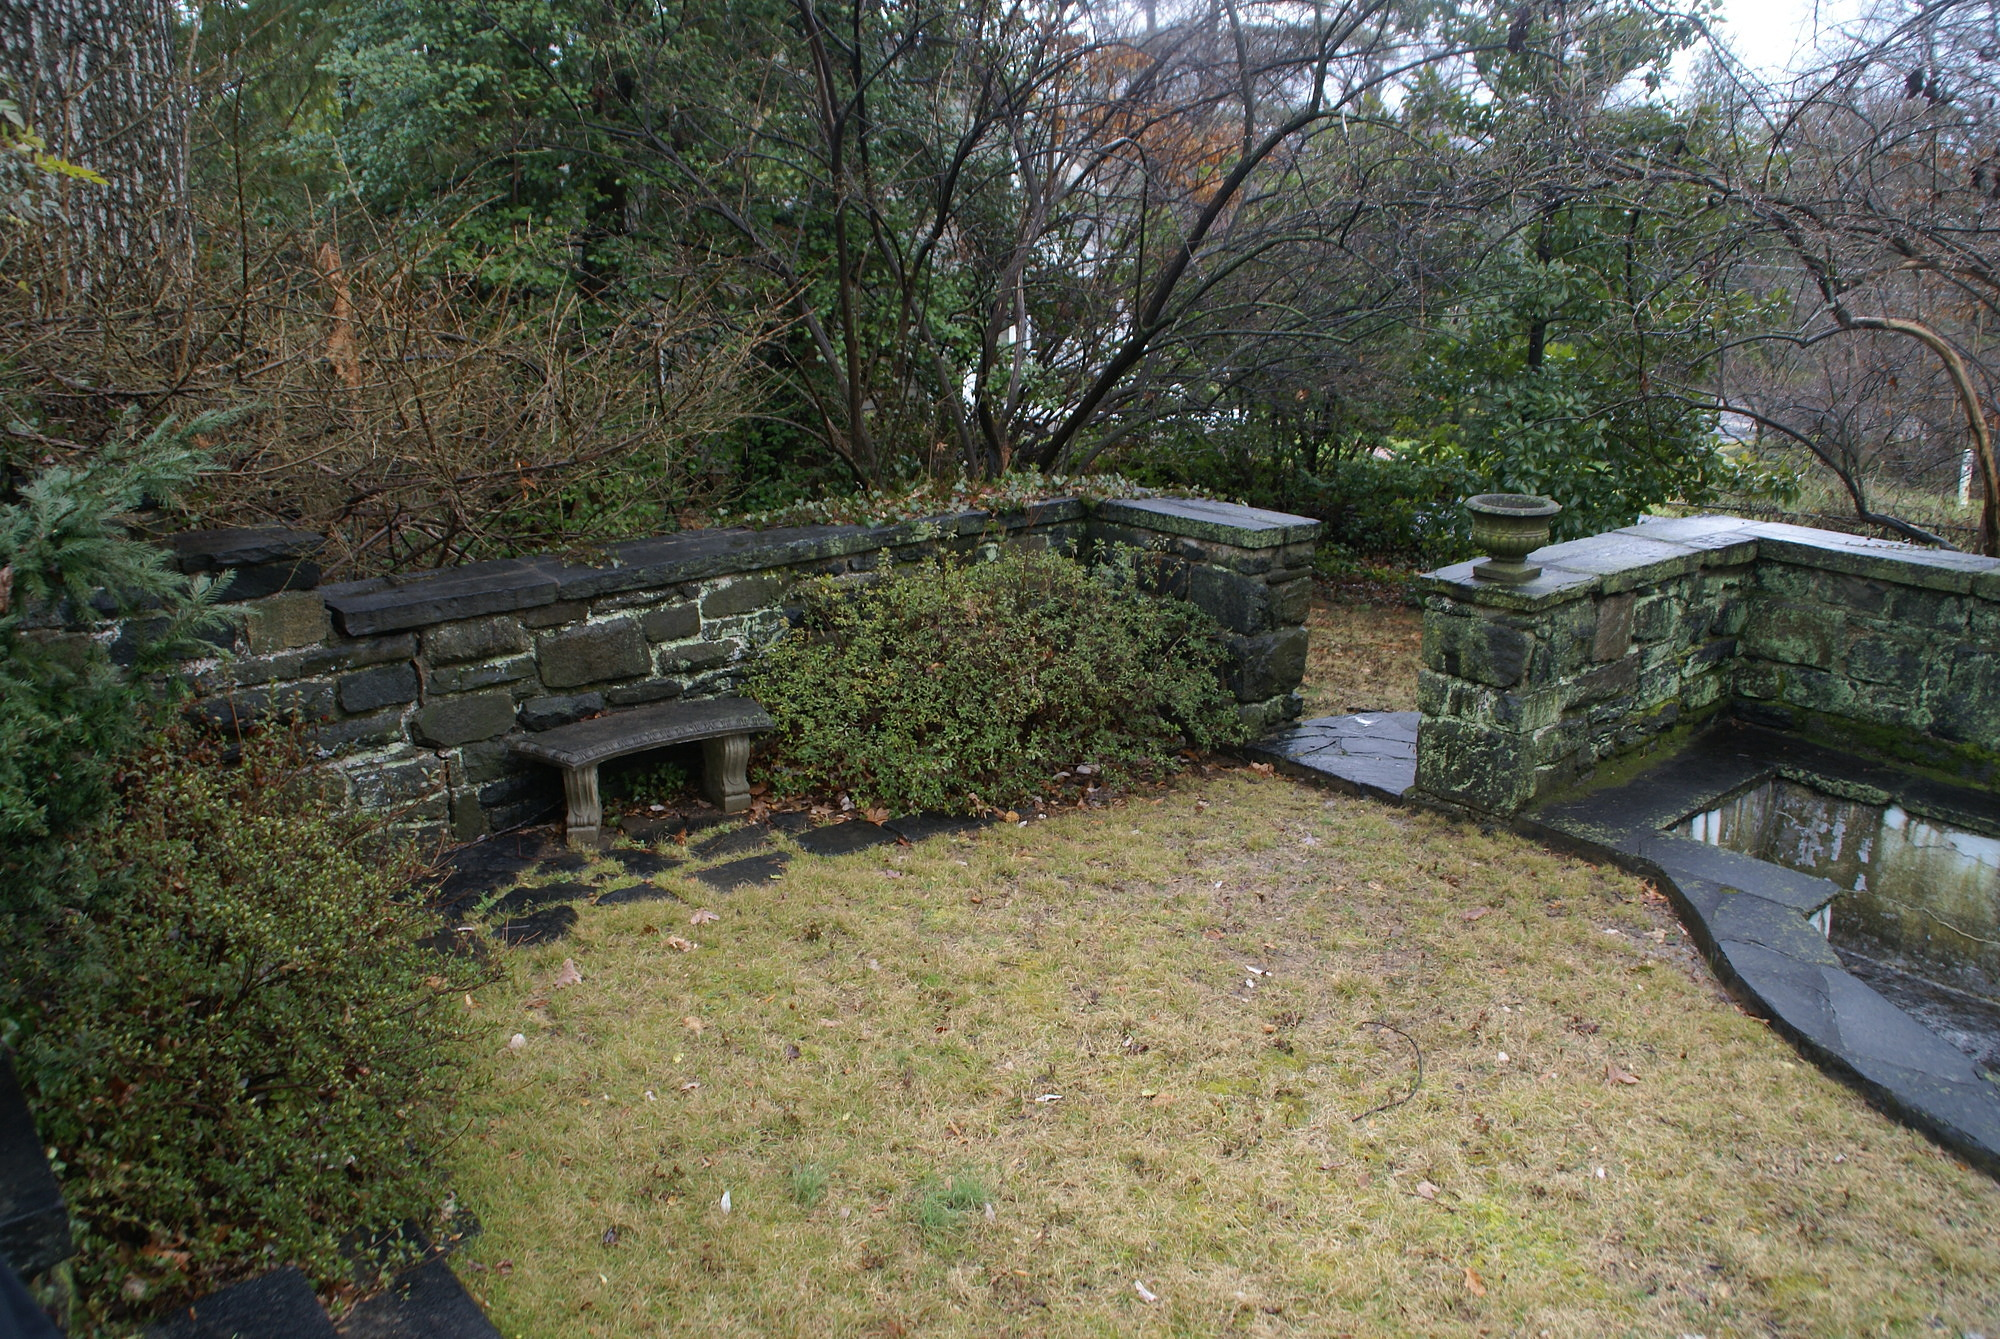 [Marsh Garden]: benches were part of the Greely design.